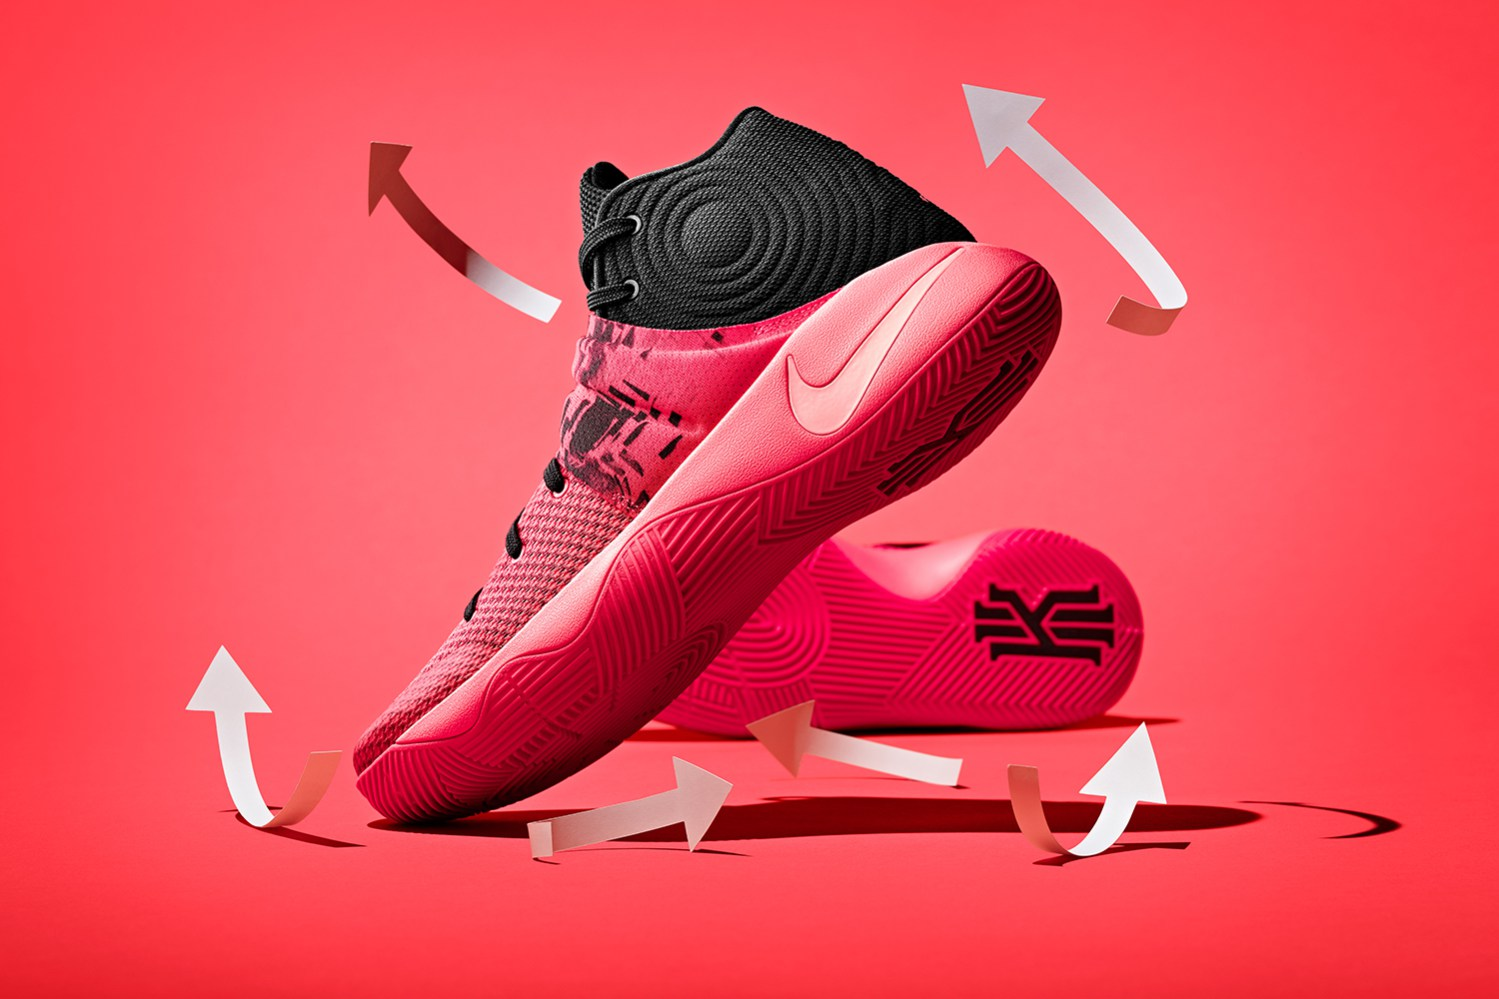 a357e38de75d Kyrie Irving and Nike Debut the Physics Defying Nike Kyrie 2